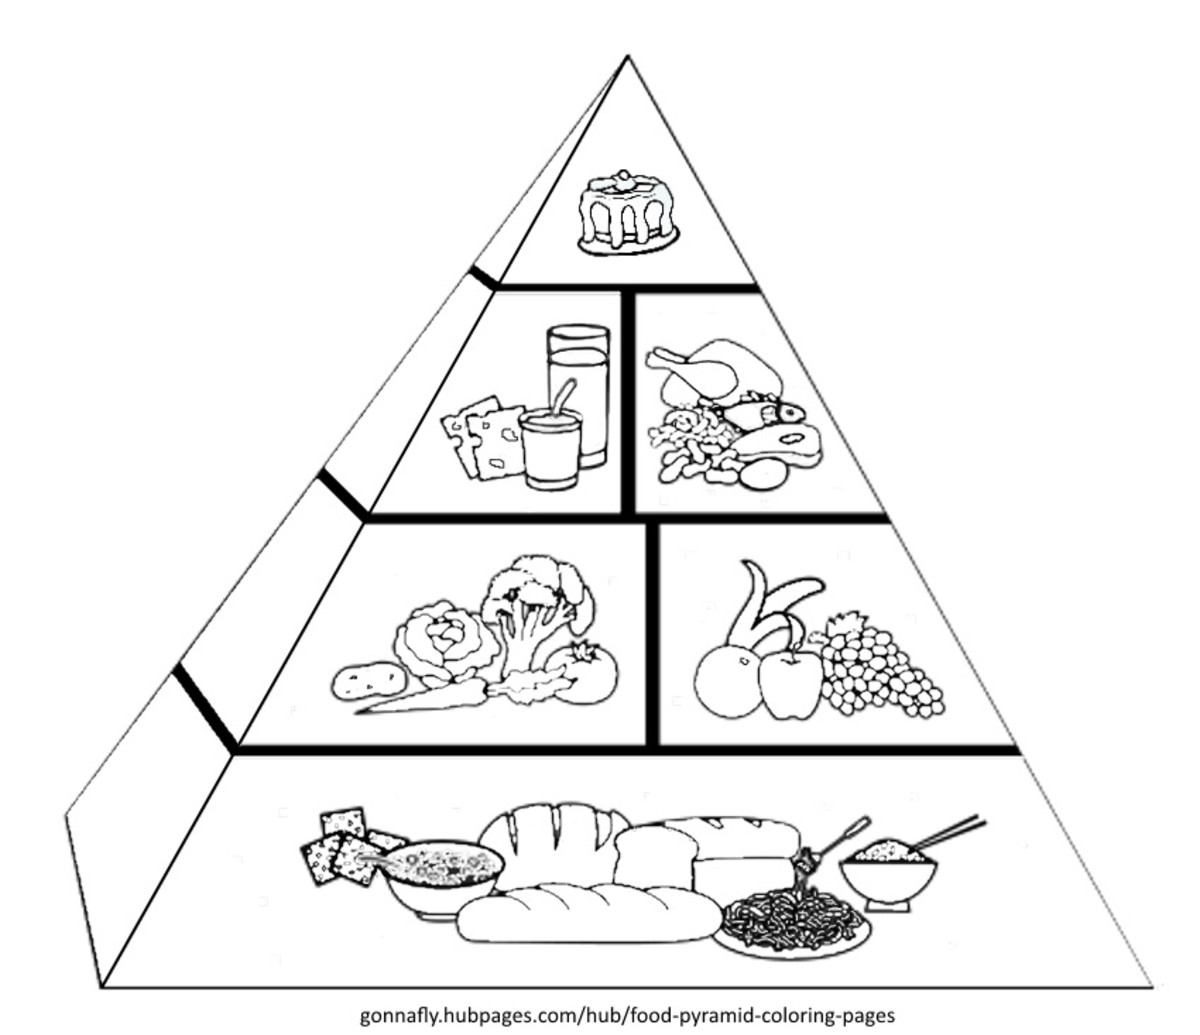 Food Pyramid Coloring Pages | HubPages